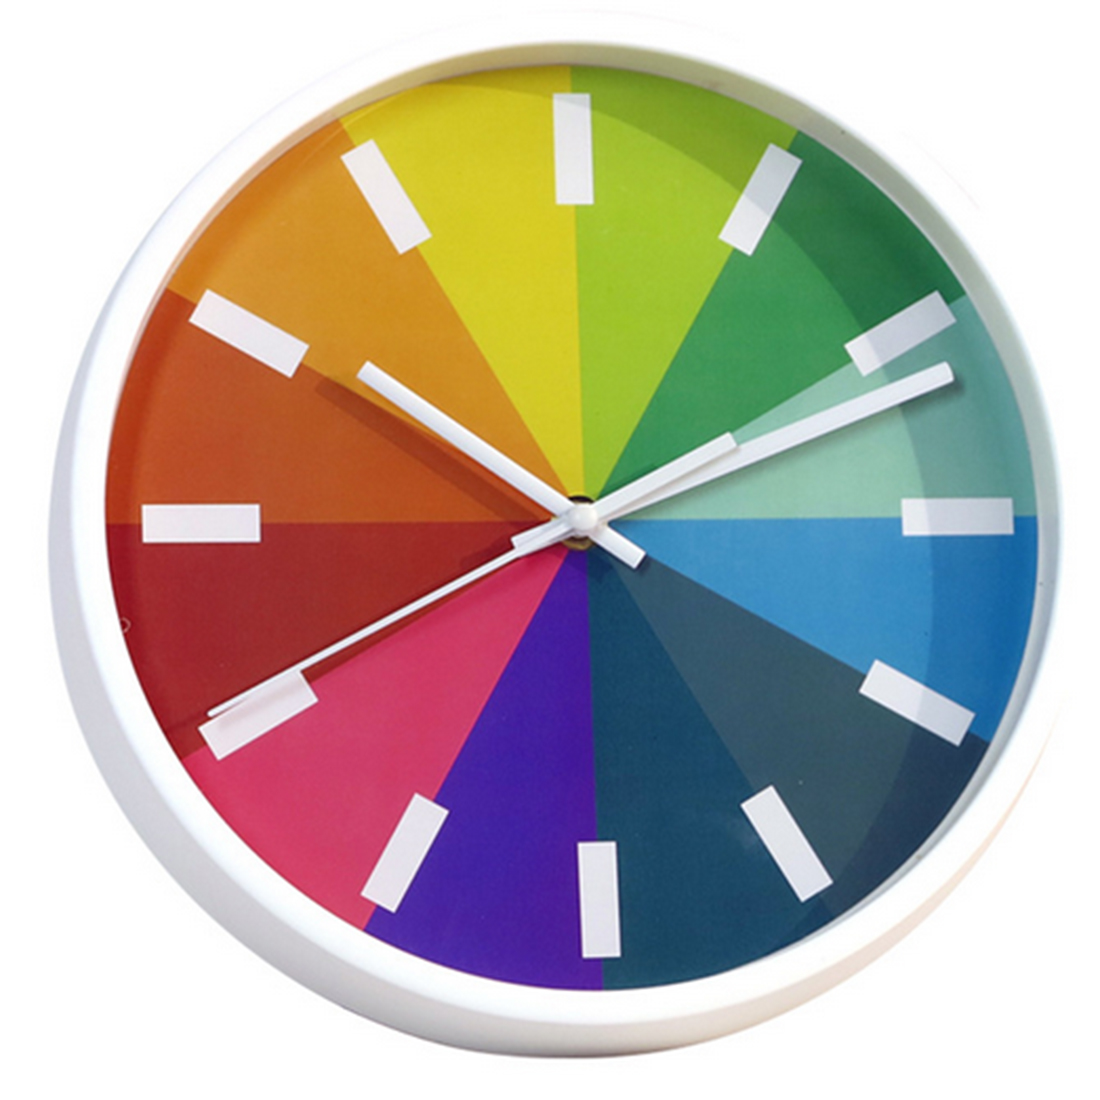 10 Inches Creative Rainbow Round Non-Ticking Slient Wall Clock Children Colorful Home... by